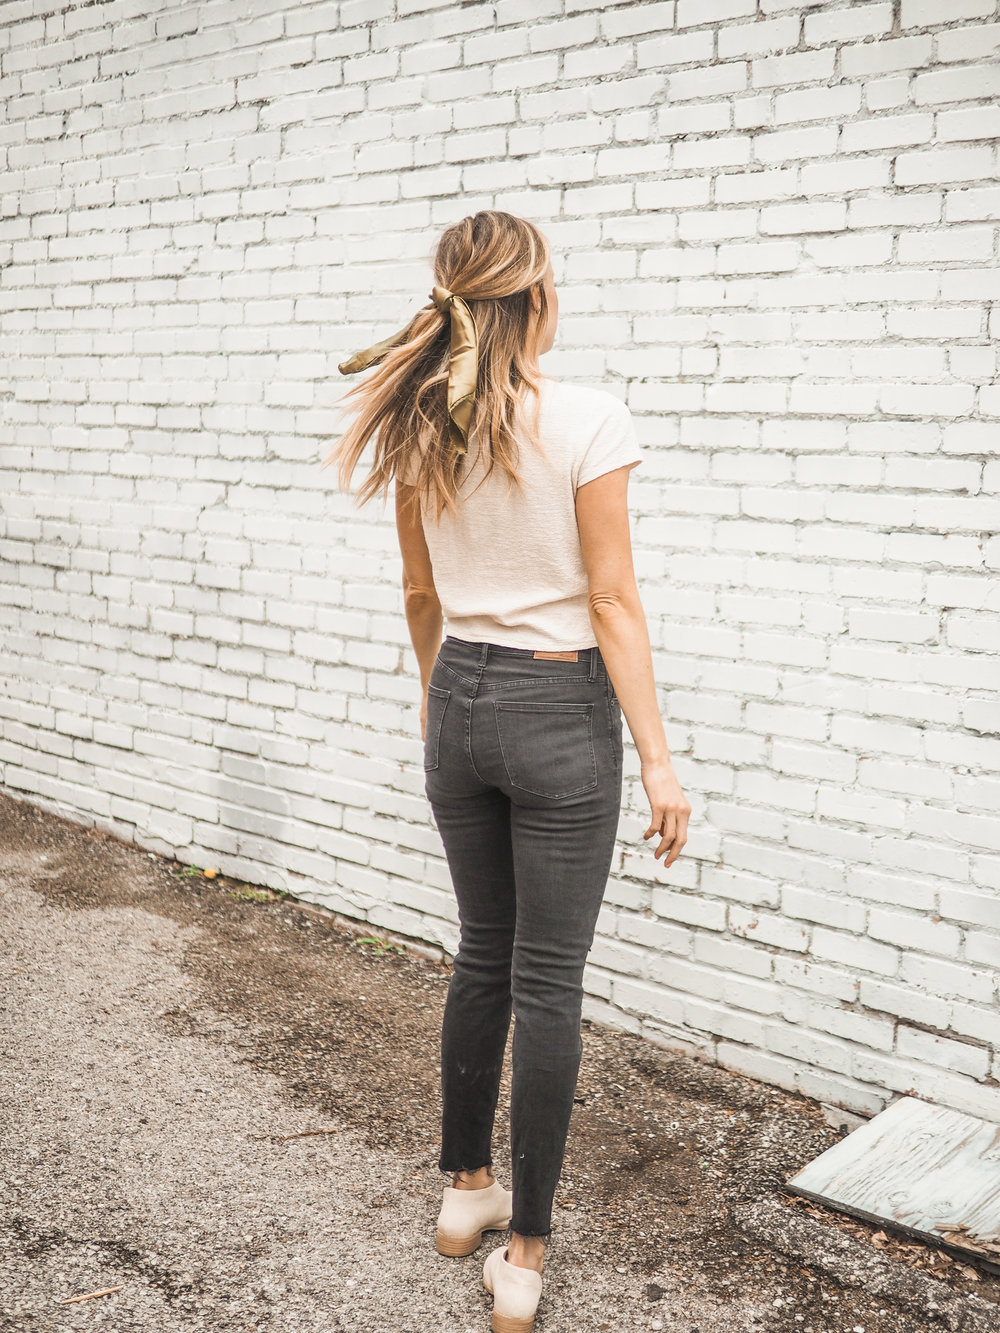 madewell black jeans and hair bow accessory